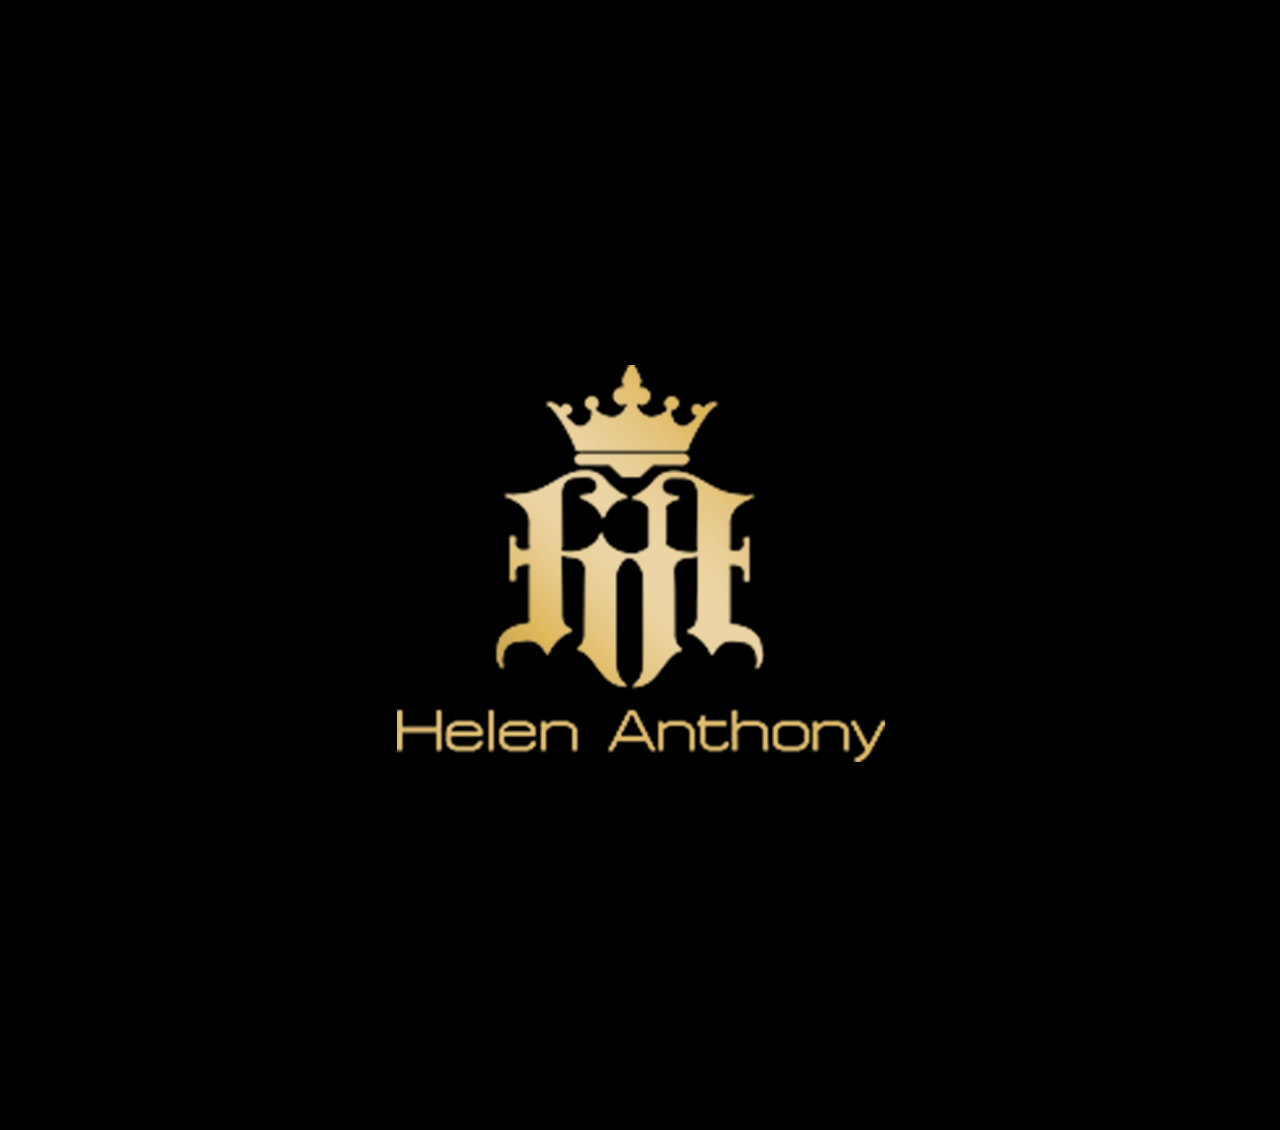 Helen Anthony